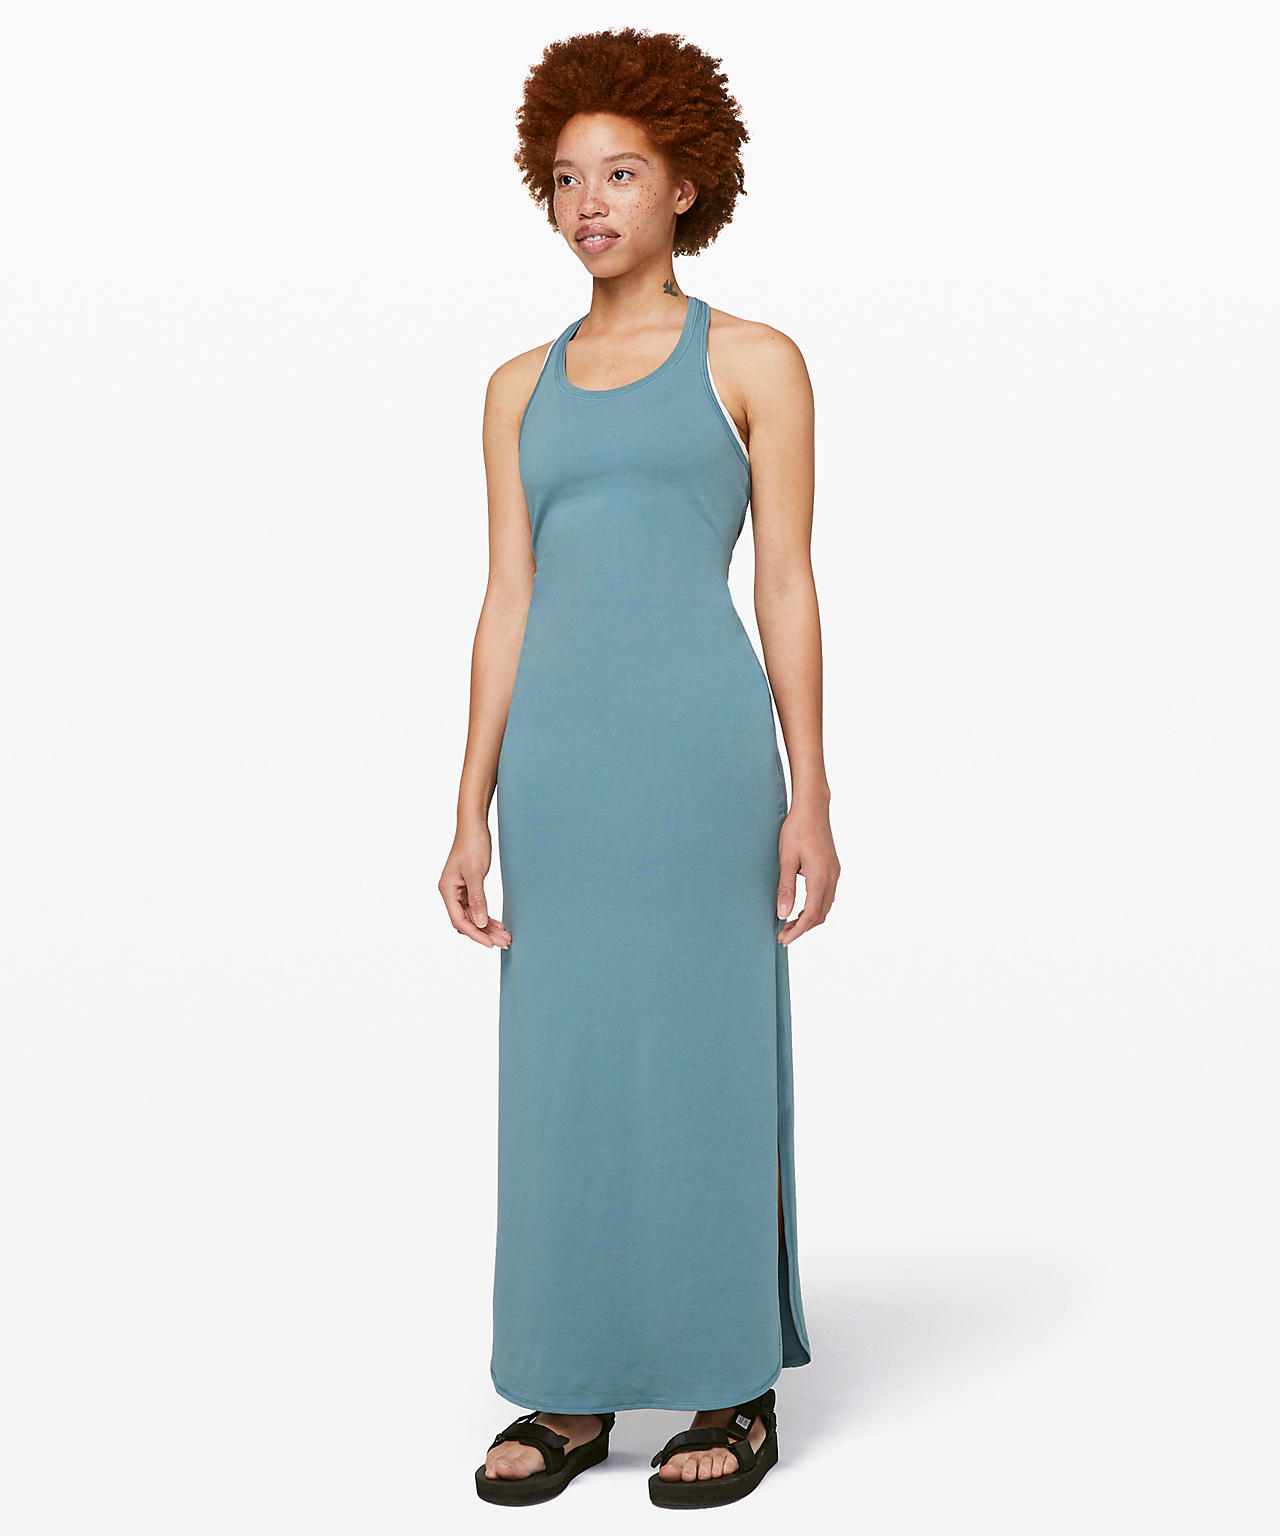 Restore and Revitalize Dress, Lululemon Upload